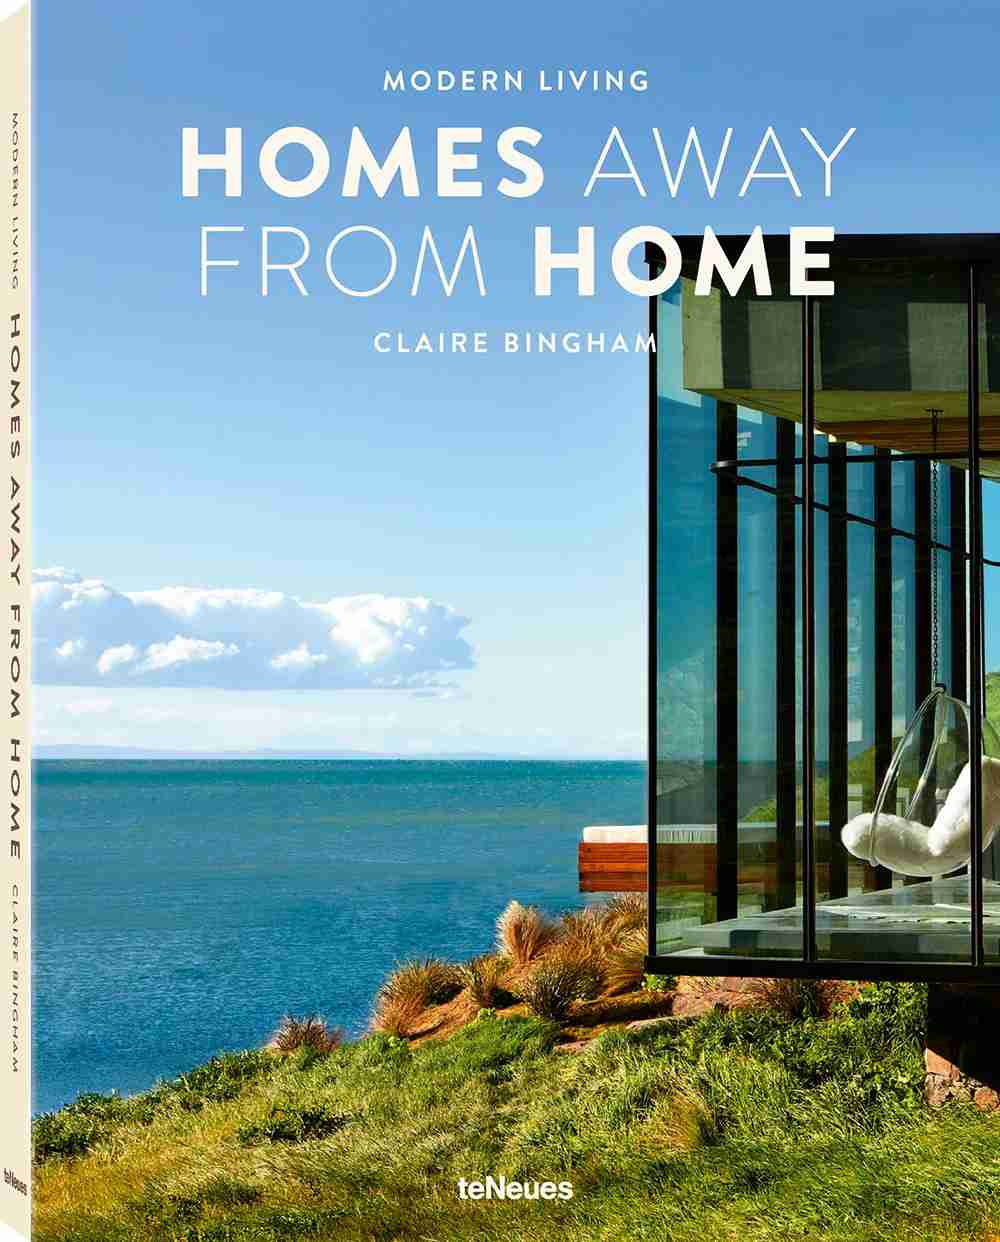 Modern Living — Homes Away From Home, by Claire Bingham, published by teNeues.